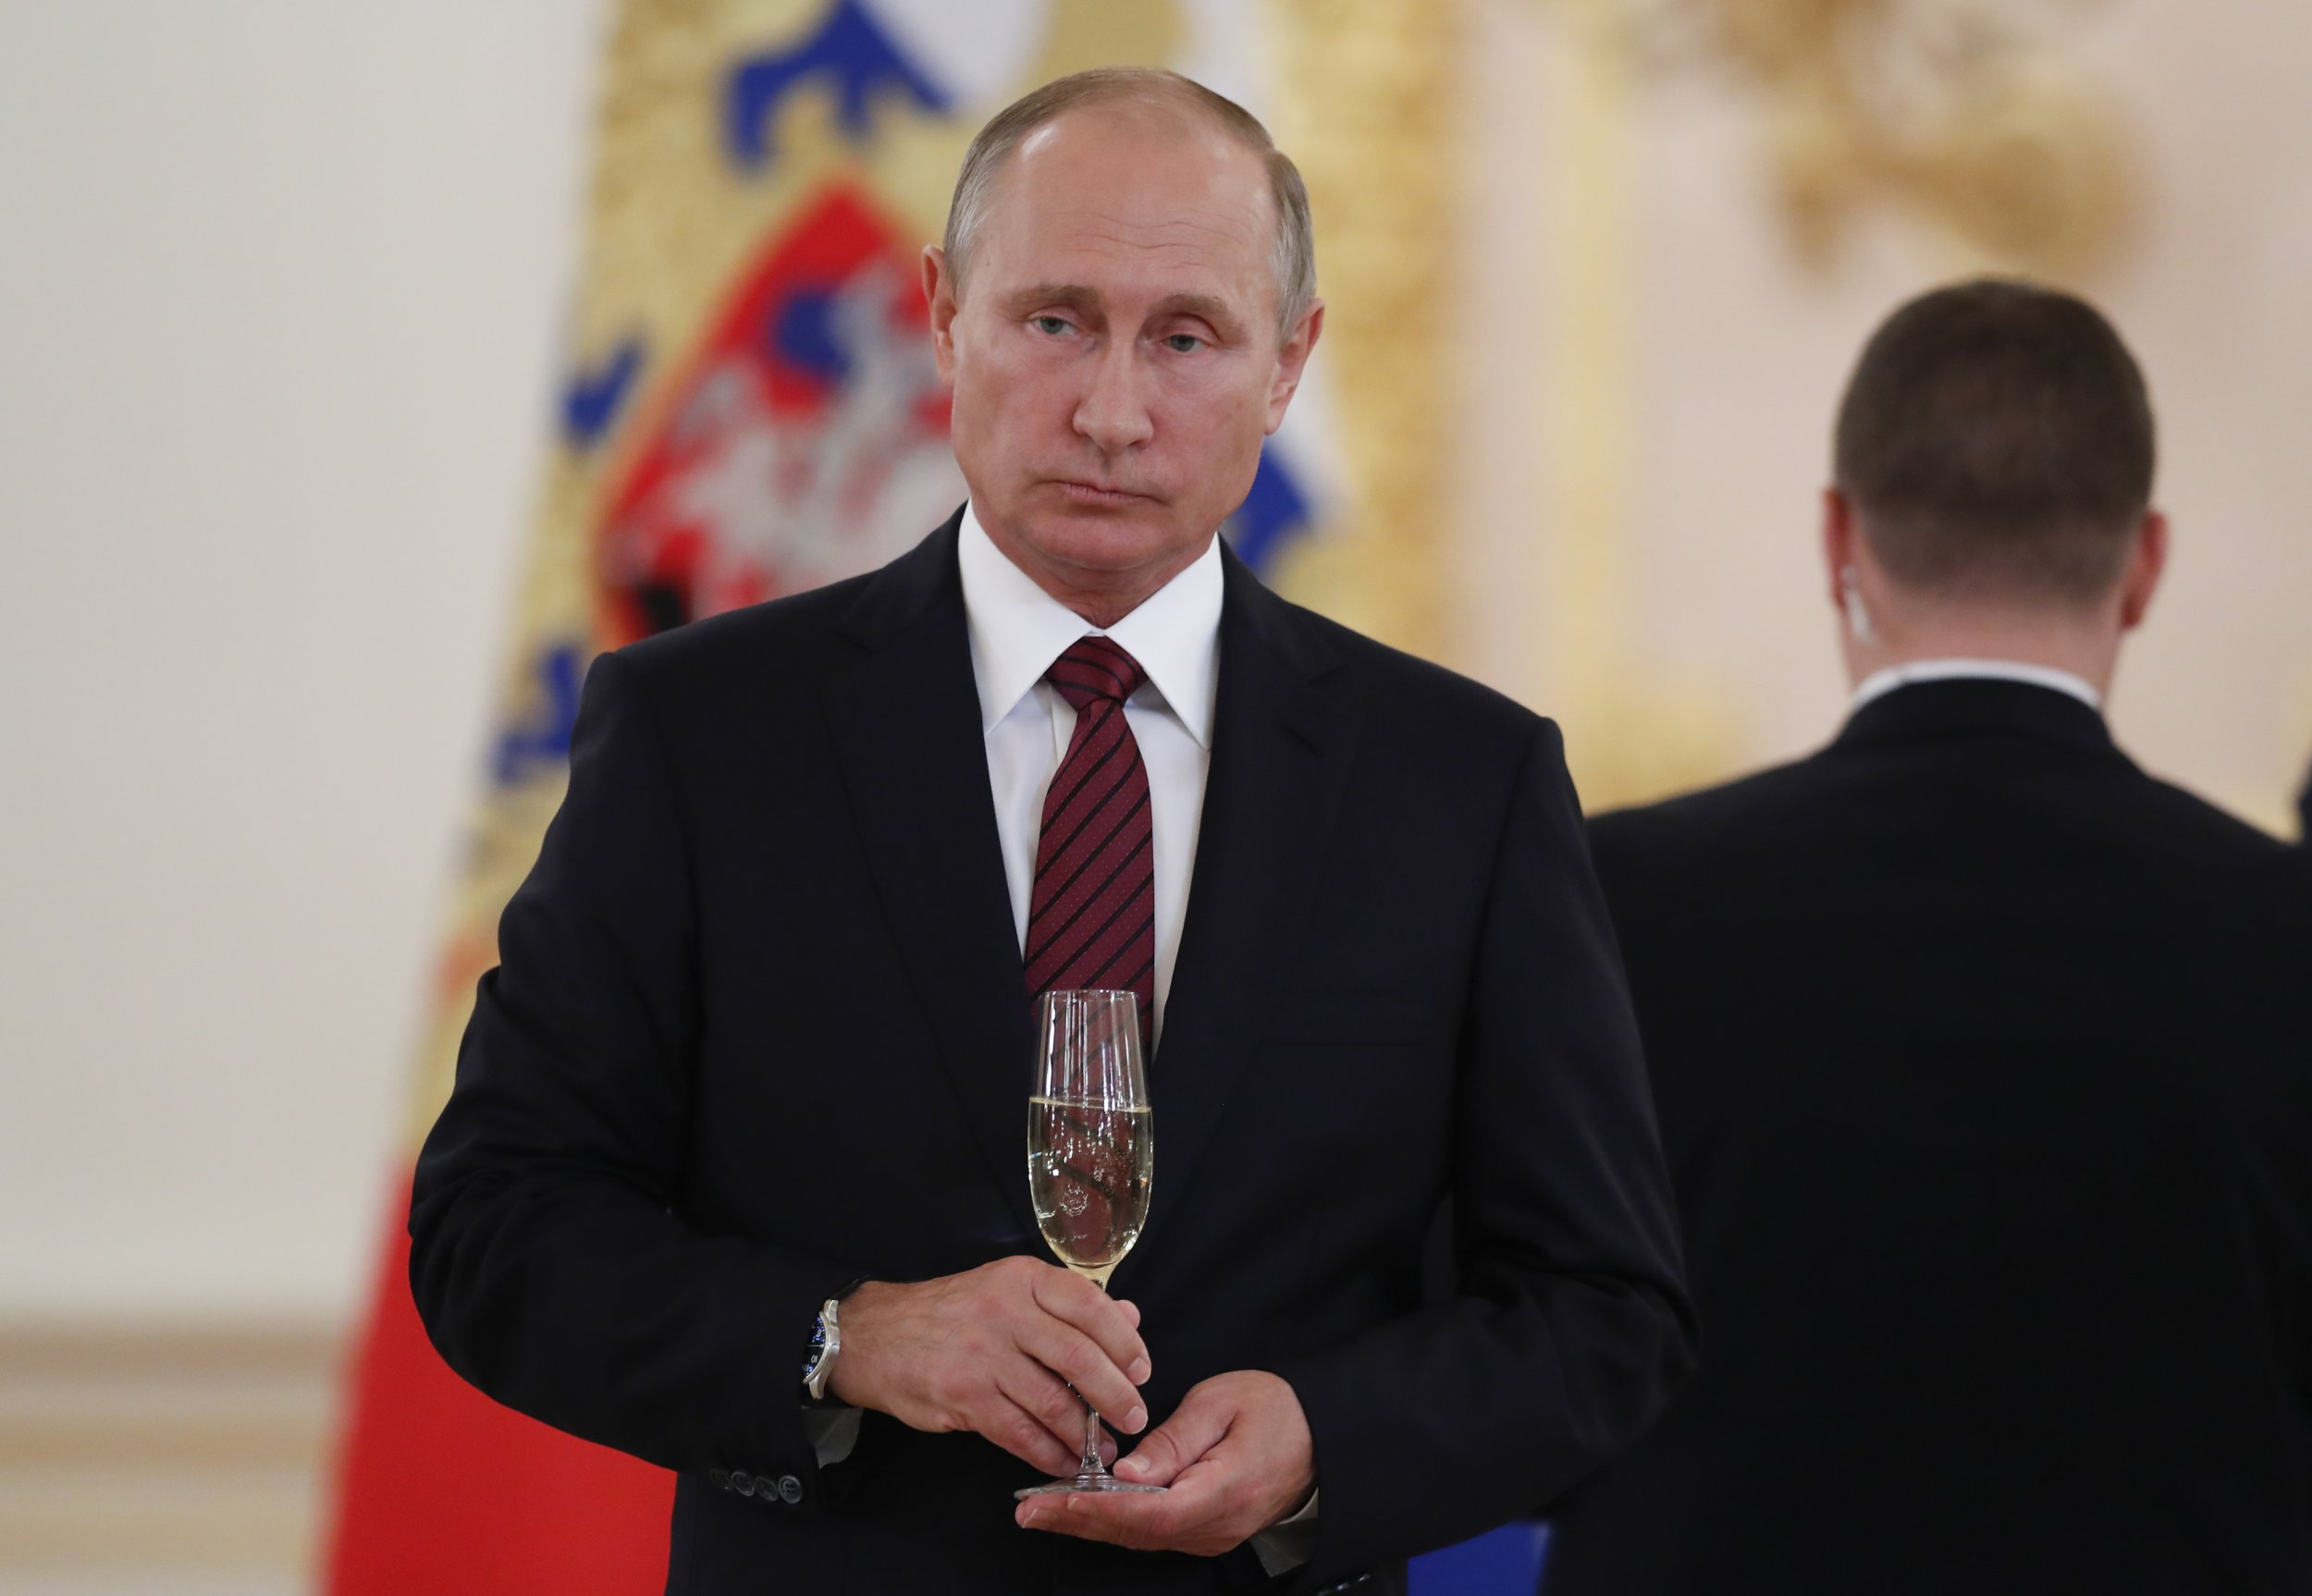 Vladimir Putin S Birthday Protests Call For His Exit As He Hits Retirement Age Under Russian Law